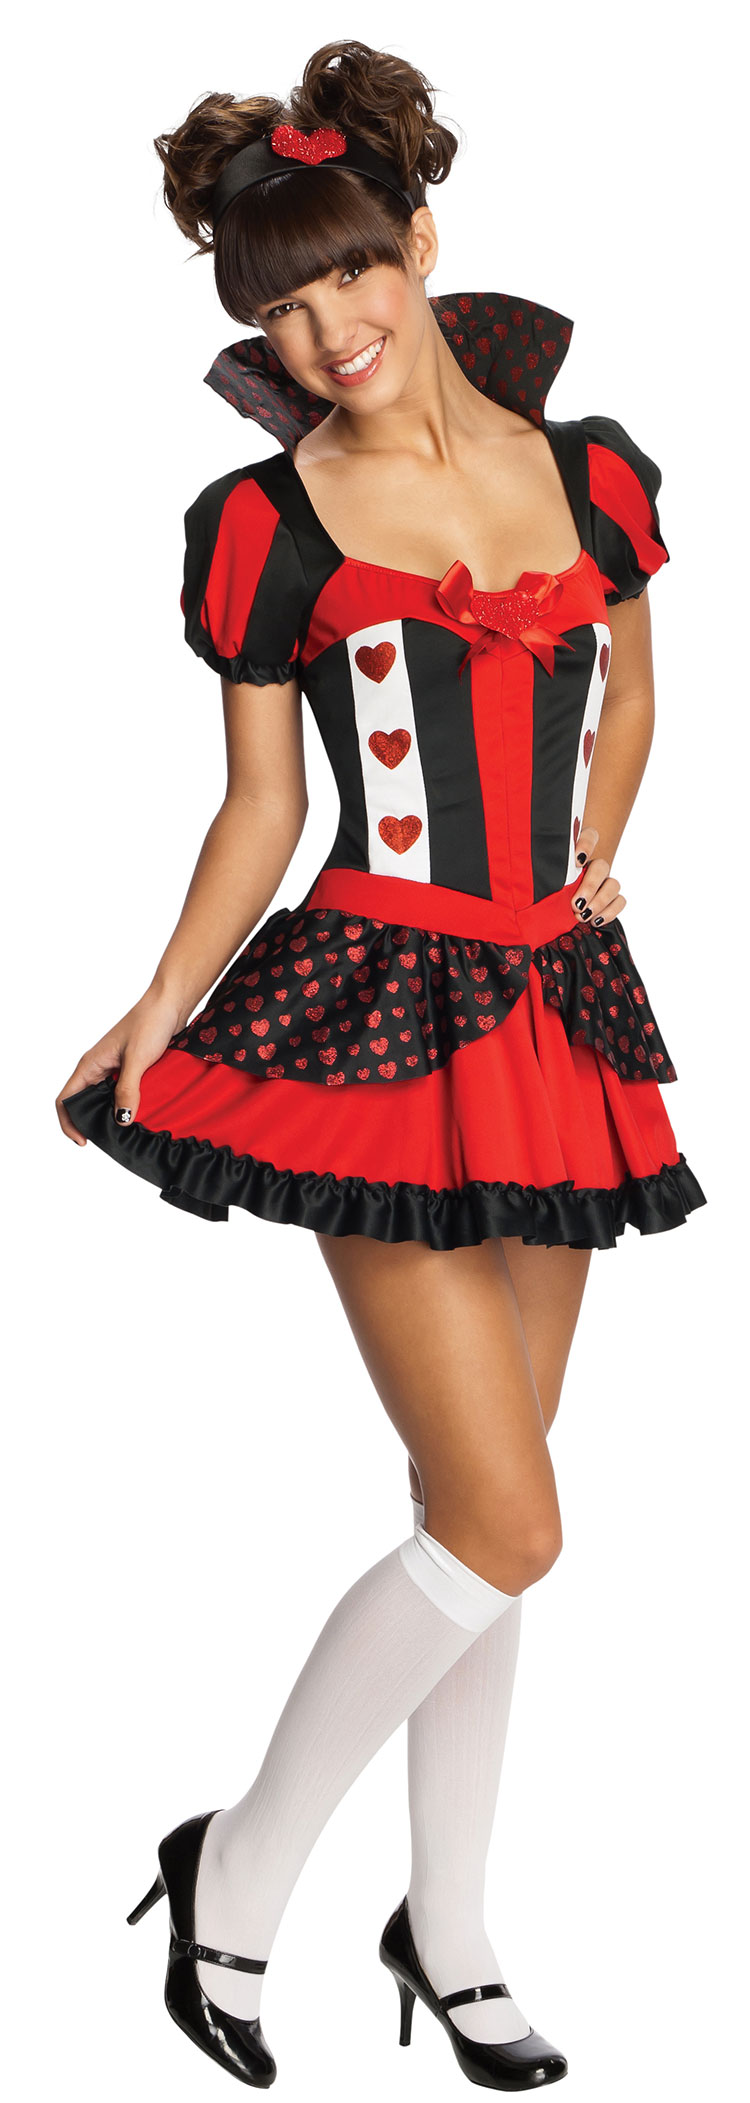 Teen Queen Of Hearts Costume - Click Image to Close